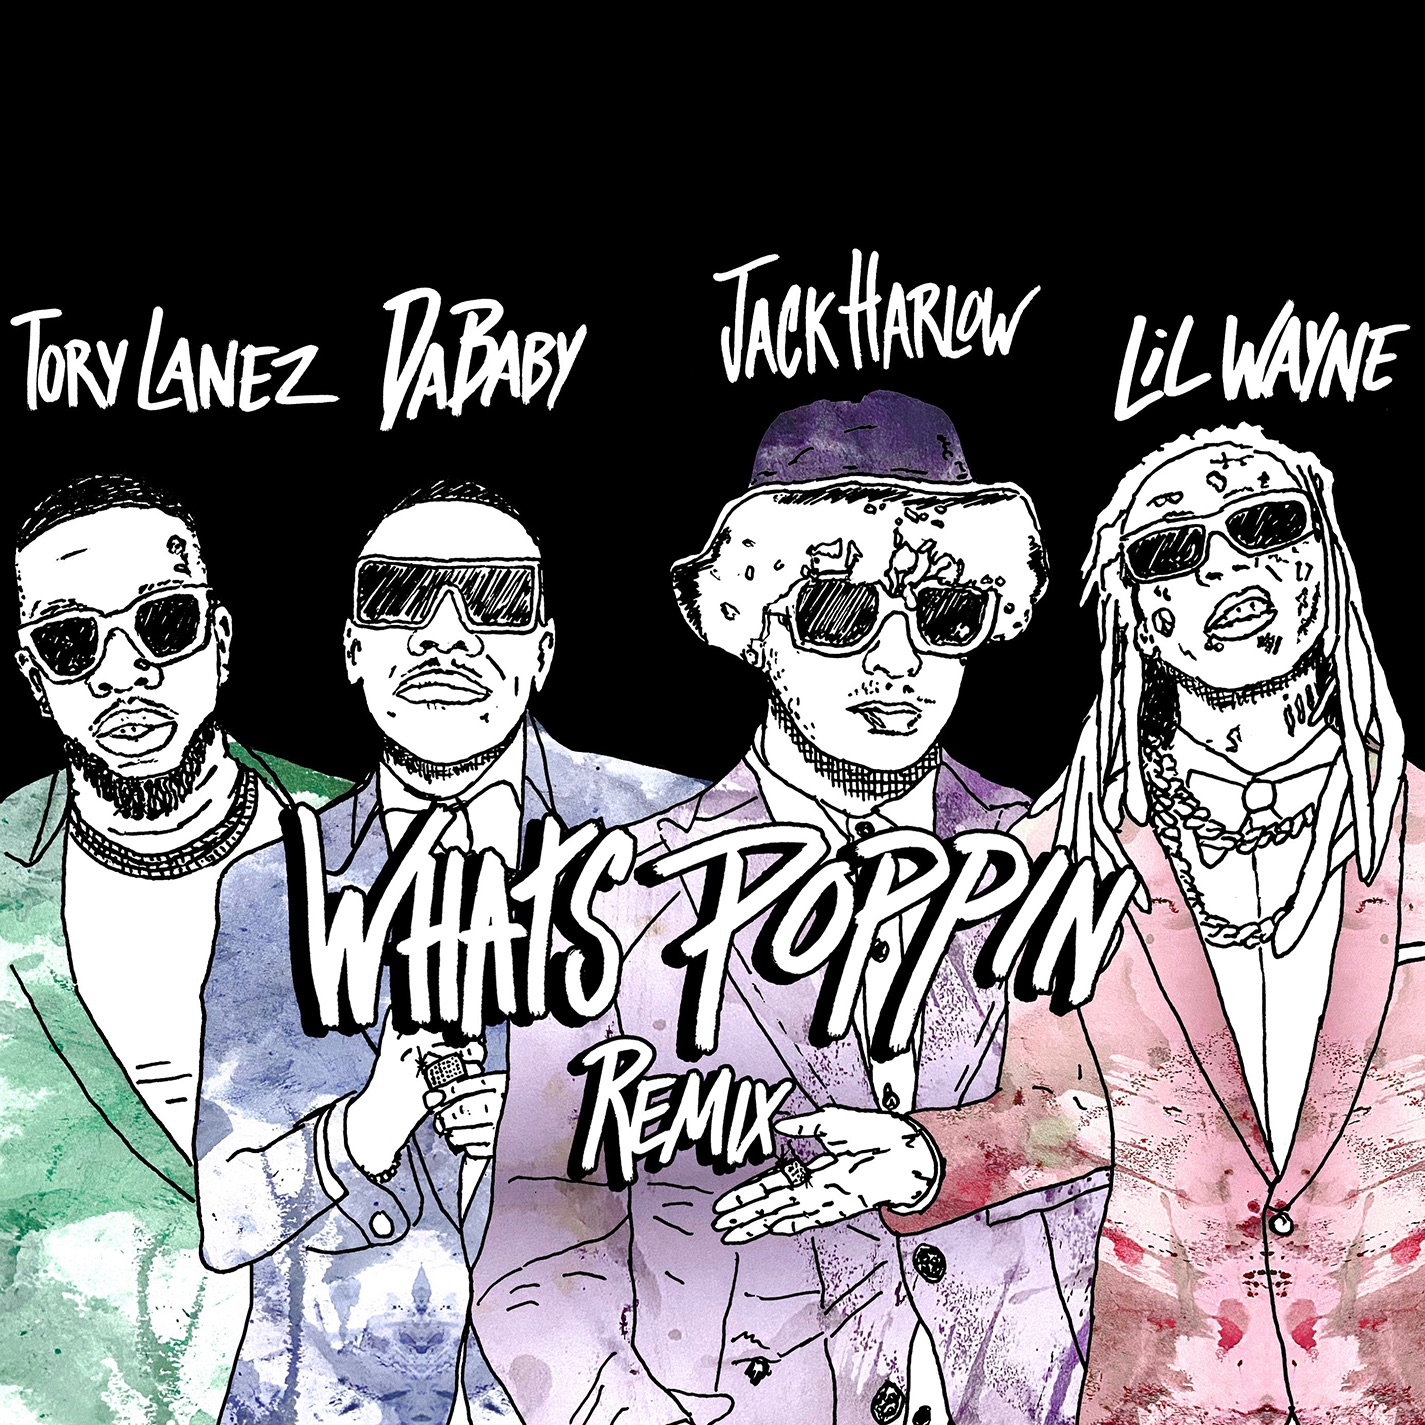 Art for WHATS POPPIN (Remix) [feat. DaBaby, Tory Lanez & Lil Wayne] by Jack Harlow